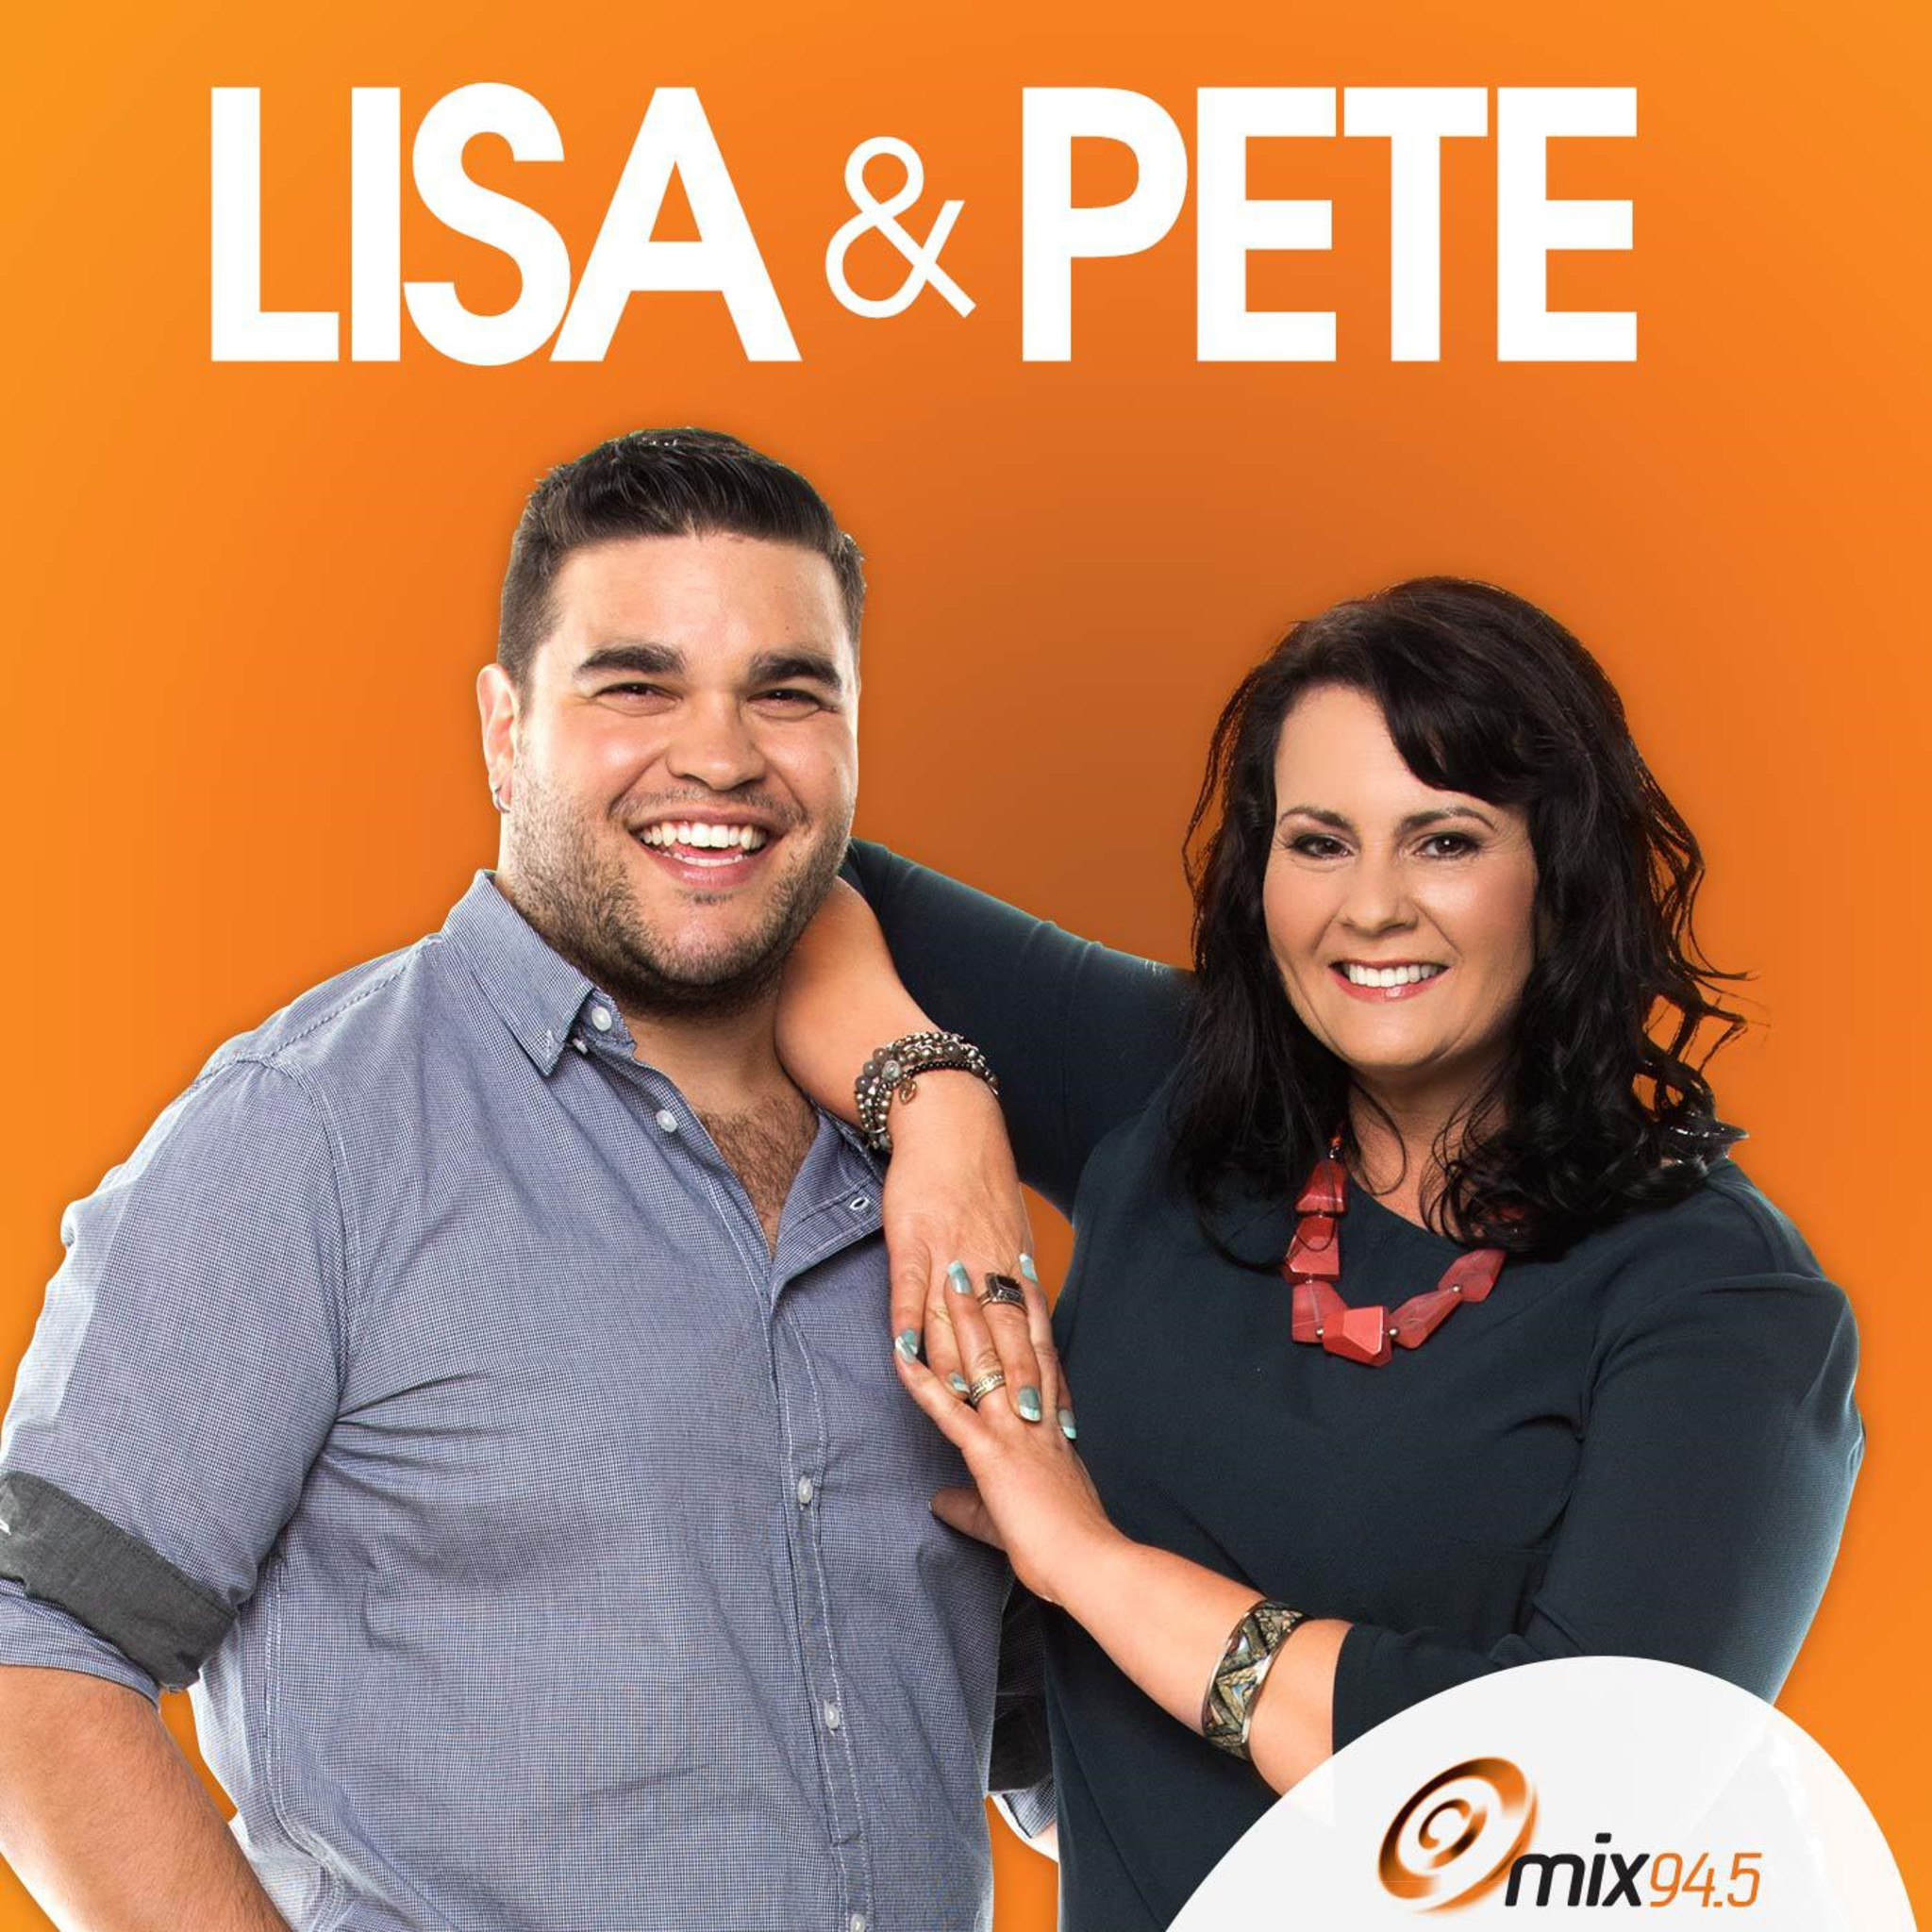 Lisa & Pete Mix94.3 Perth